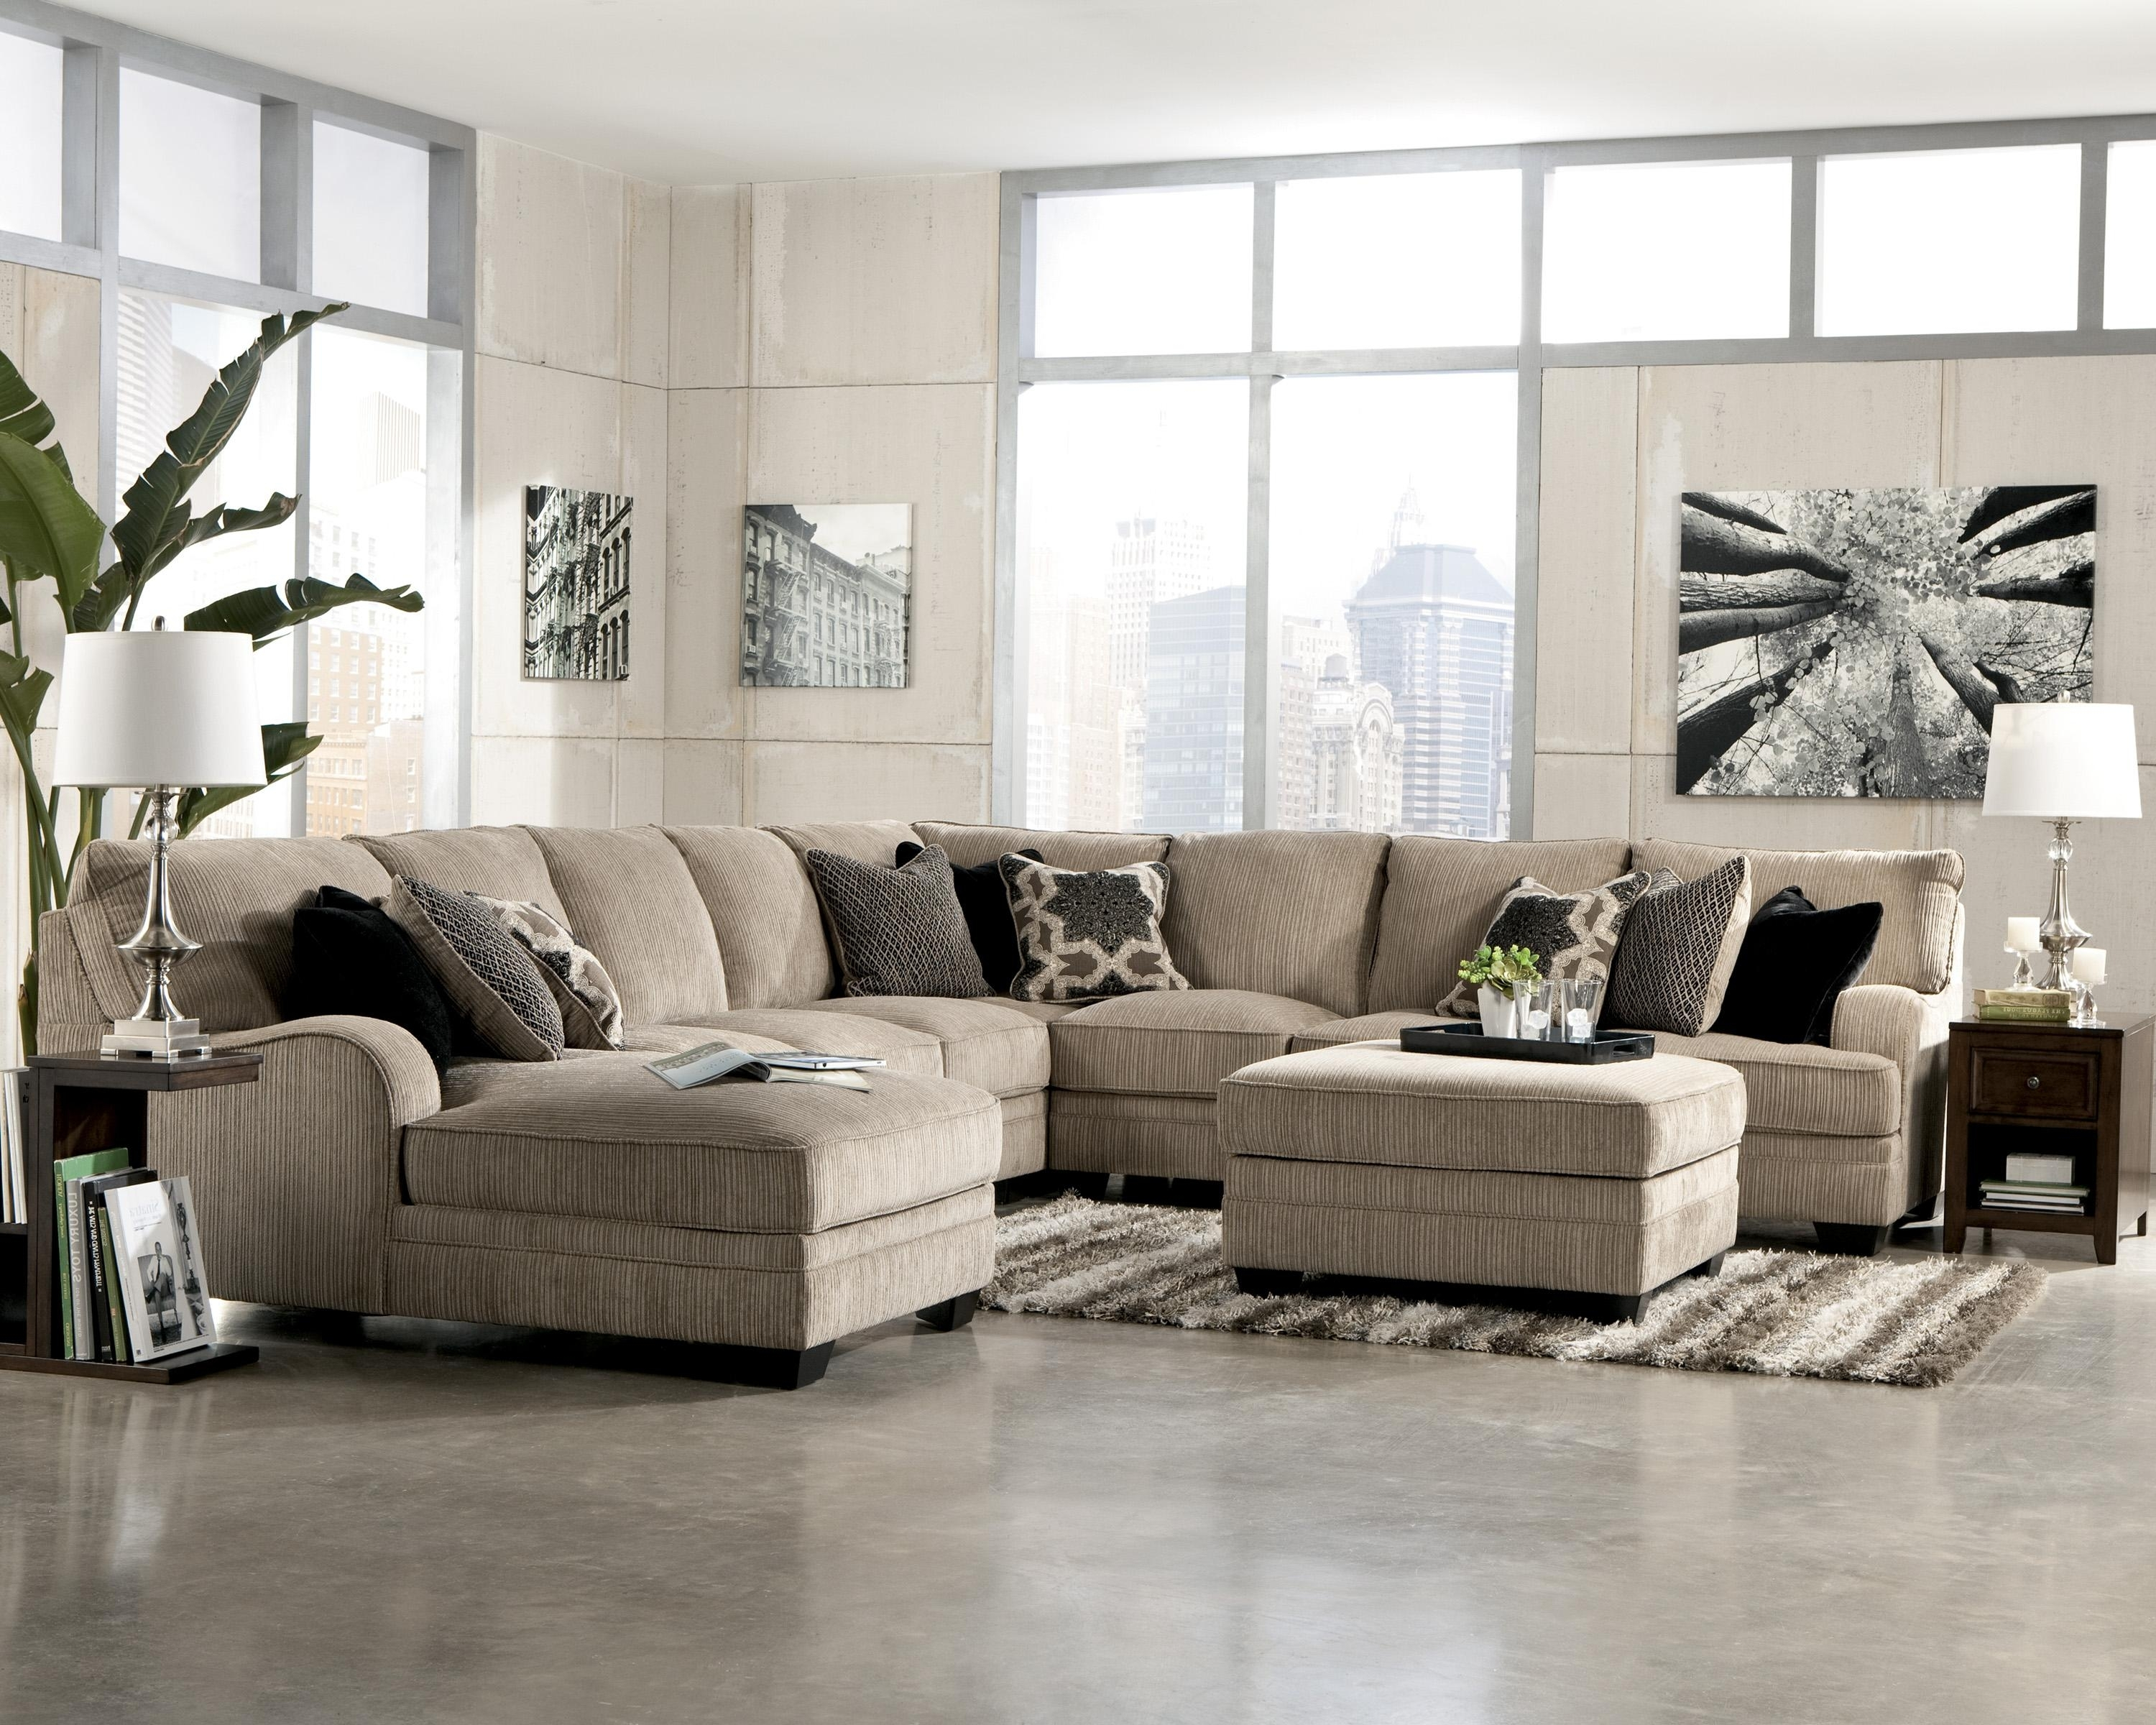 Katisha – Platinum 5 Piece Sectional Sofa With Left Chaise For Jackson Ms Sectional Sofas (Image 5 of 10)